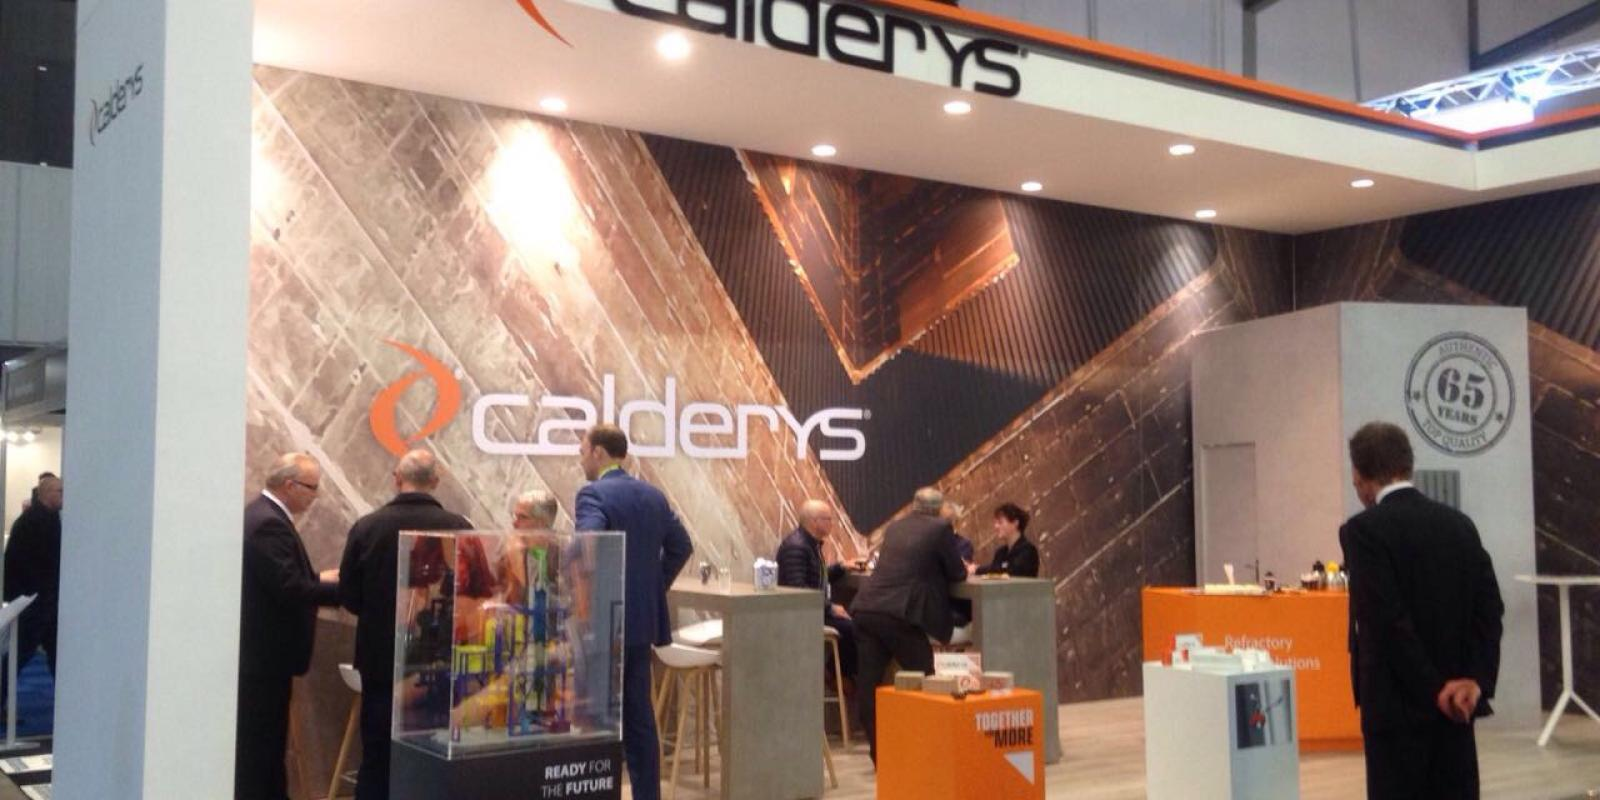 Calderys at Maintenance Trade Show Antwerp